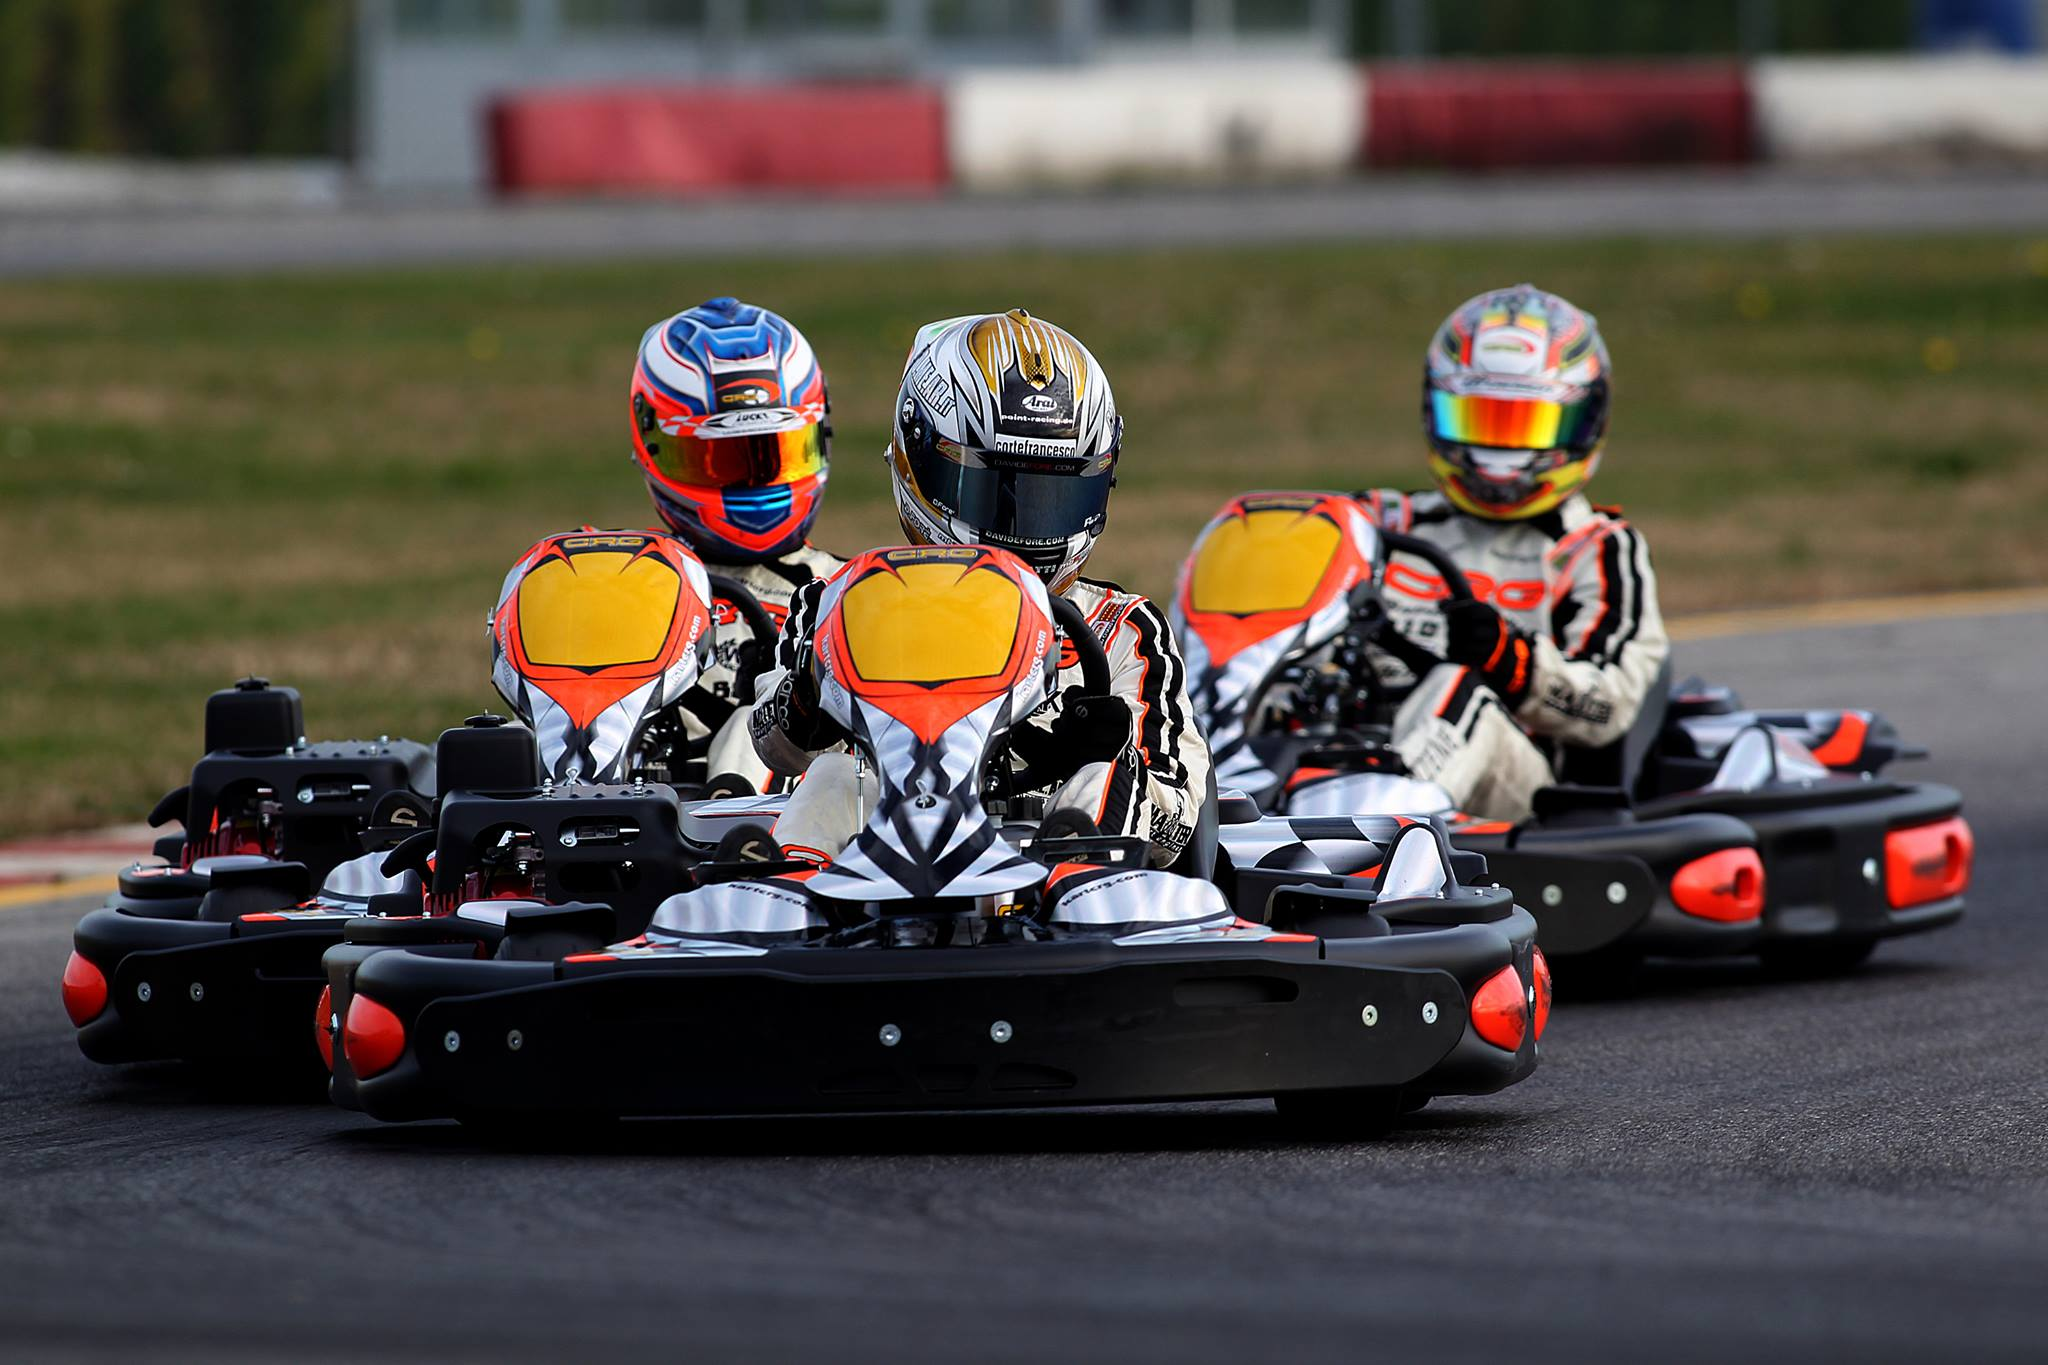 Opinion, you Go kart racing have won